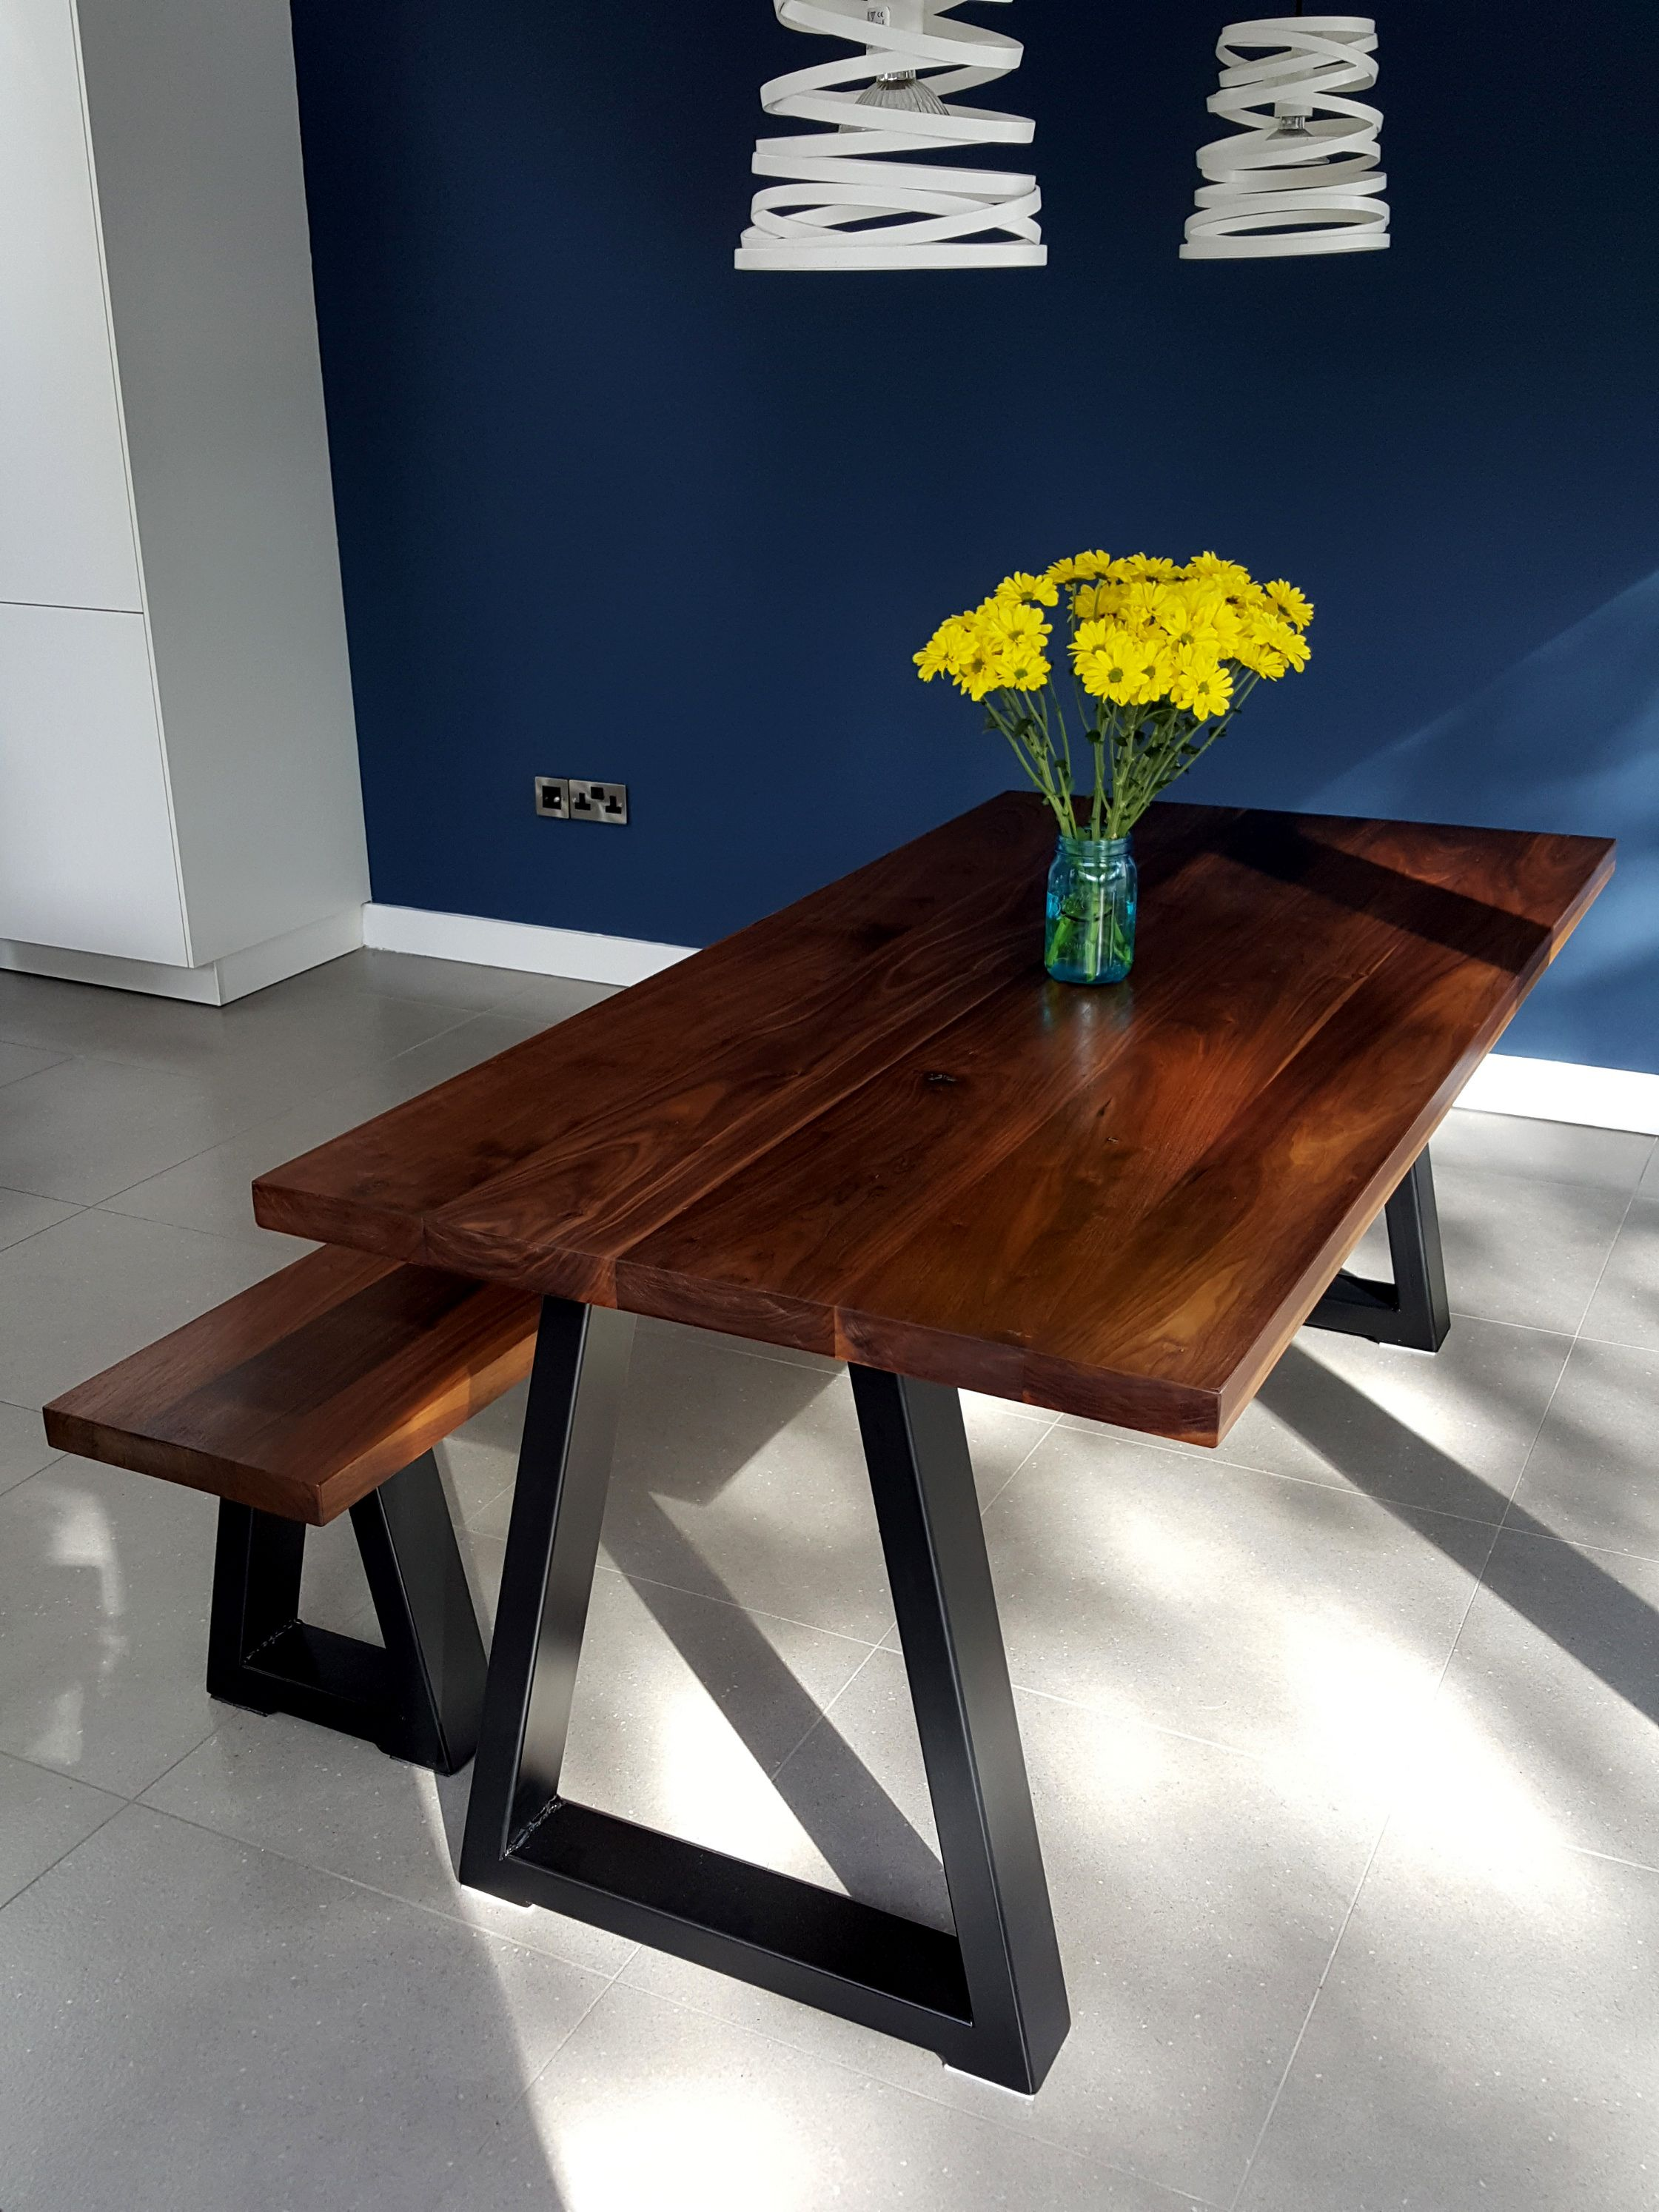 Walnut Dining Table And Bench Set With Chunky Trapezoid Base Handmade To Order For Clients In Clontarf Dublin